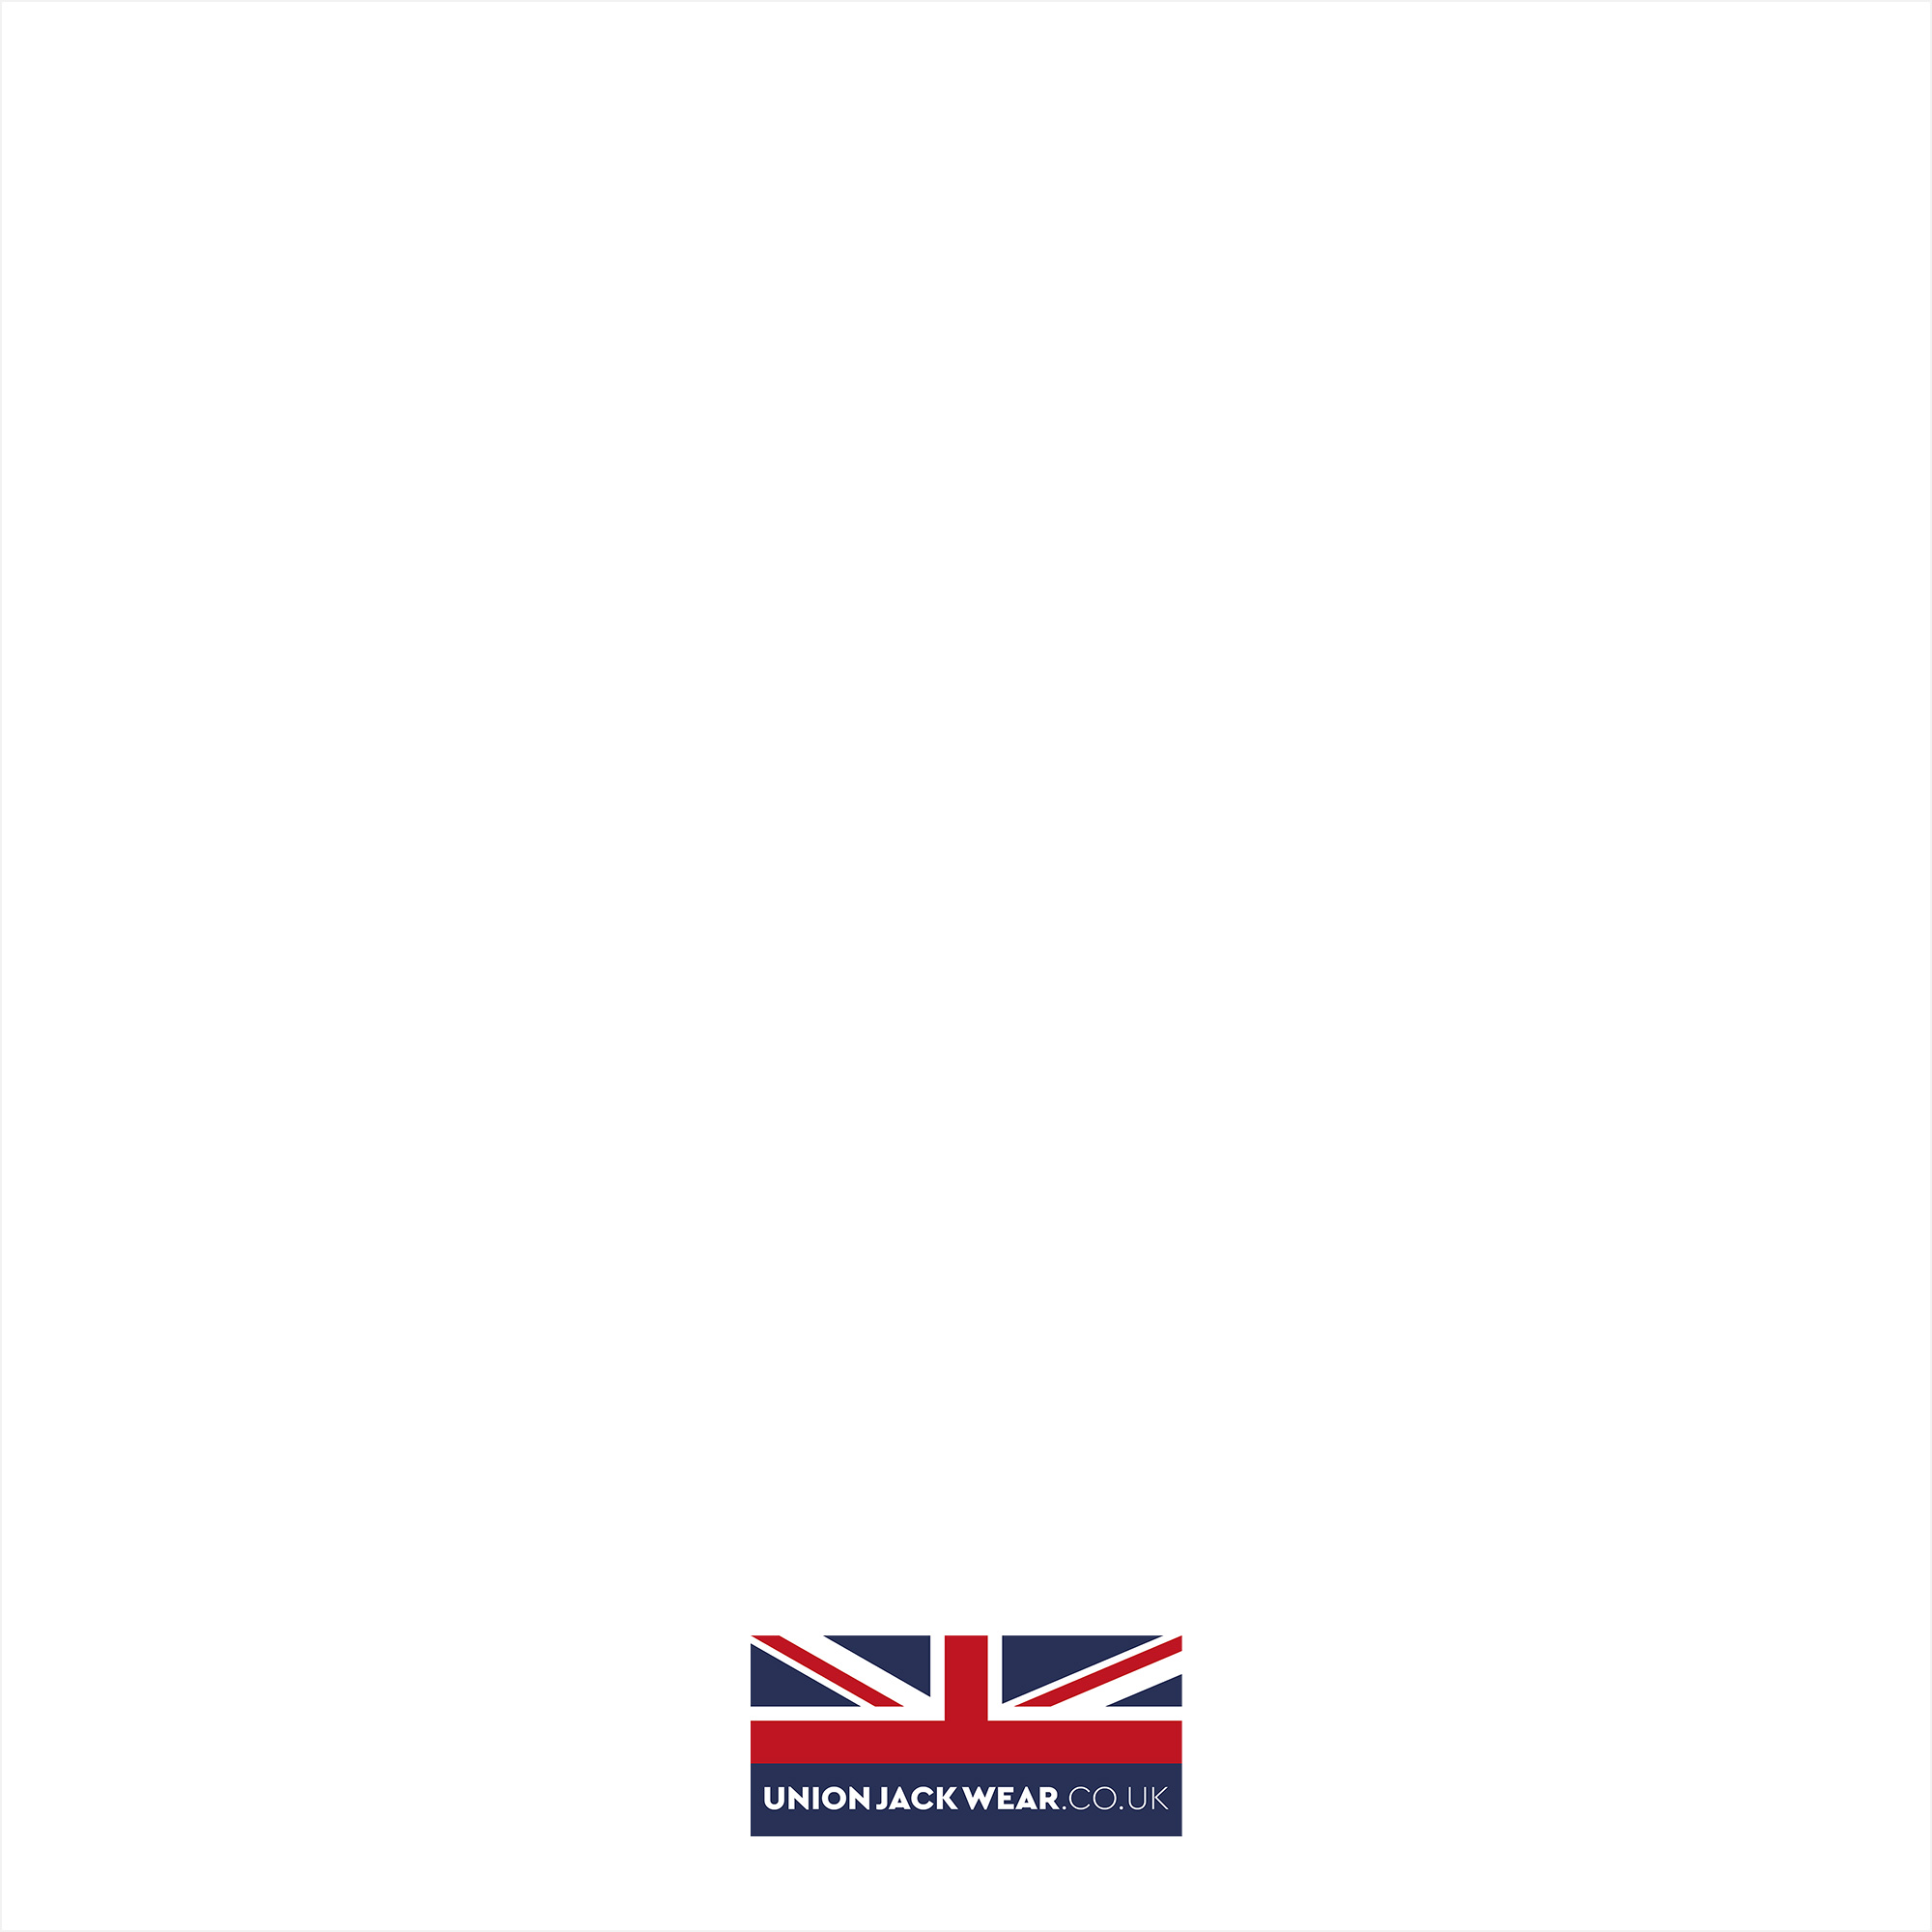 Union Jack Wear Union Jack Tea Towel